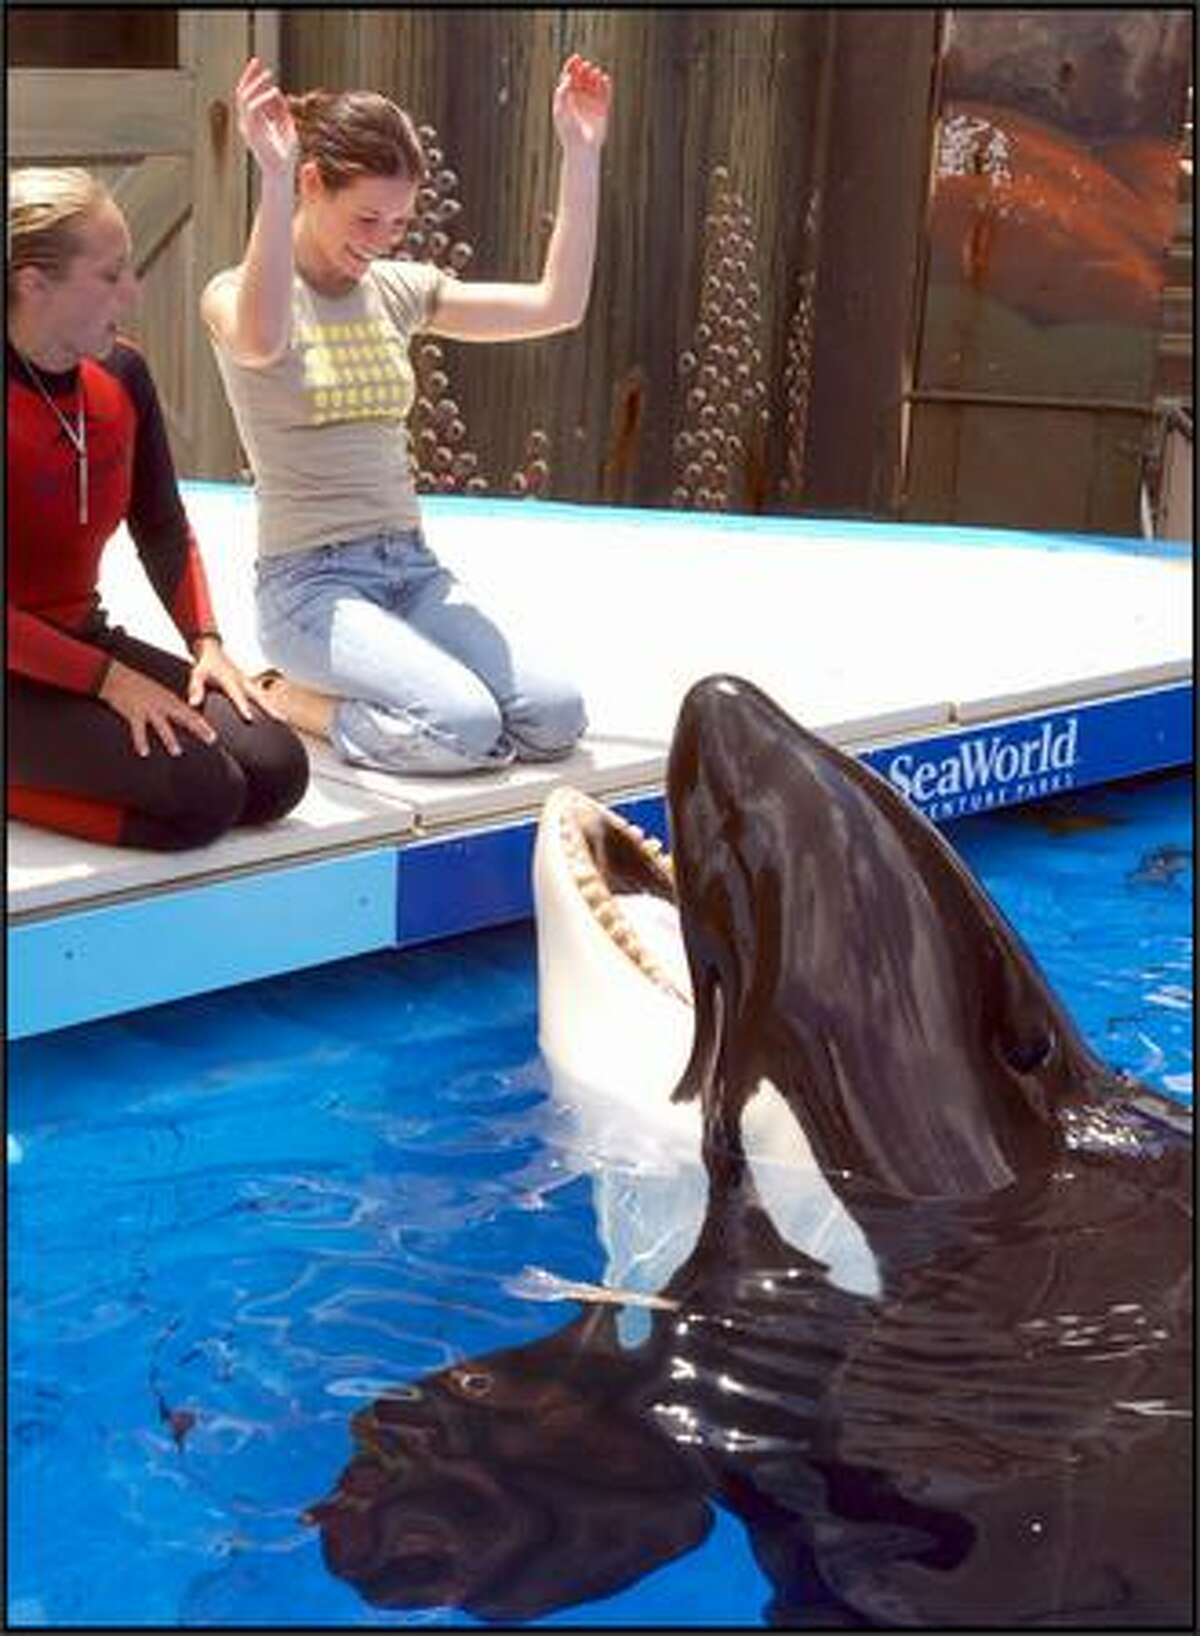 Looks like Shamu knows just where to find actress Evangeline Lilly, one of the stars of the hit ABC show,